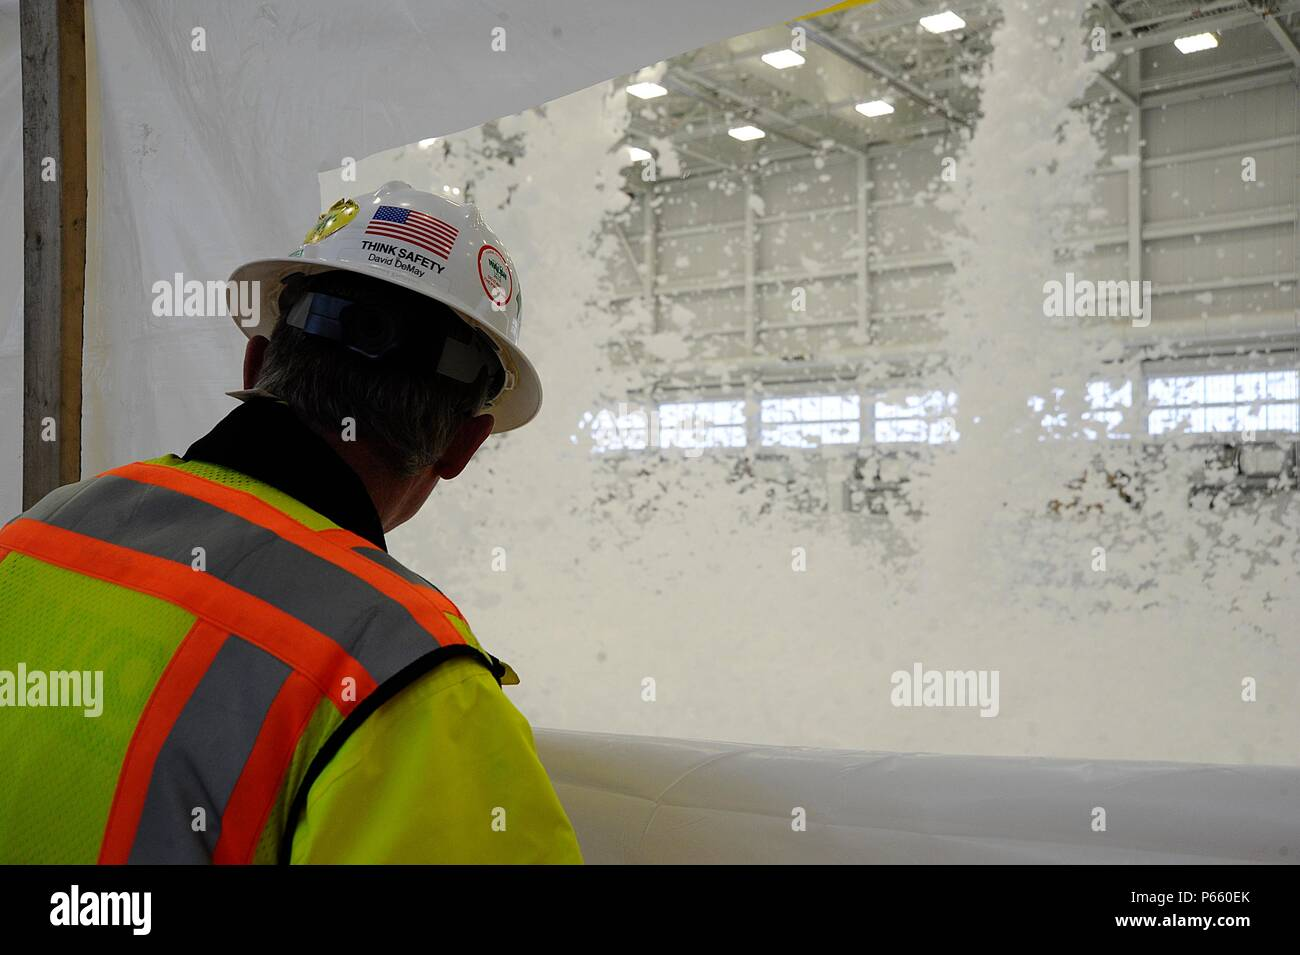 David Demay, construction site manager, watches foam rain down in a hangar during a fire suppression safety test, May 3, 2016, at McConnell Air Force Base, Kan. The new hangars will house the KC-46's, which are scheduled to arrive here in Spring 2017. The foam is dispensed from generators in the top of the hangar which expand and suffocate fire. (U.S. Air Force photo/Airman 1st Class Jenna K. Caldwell) Stock Photo